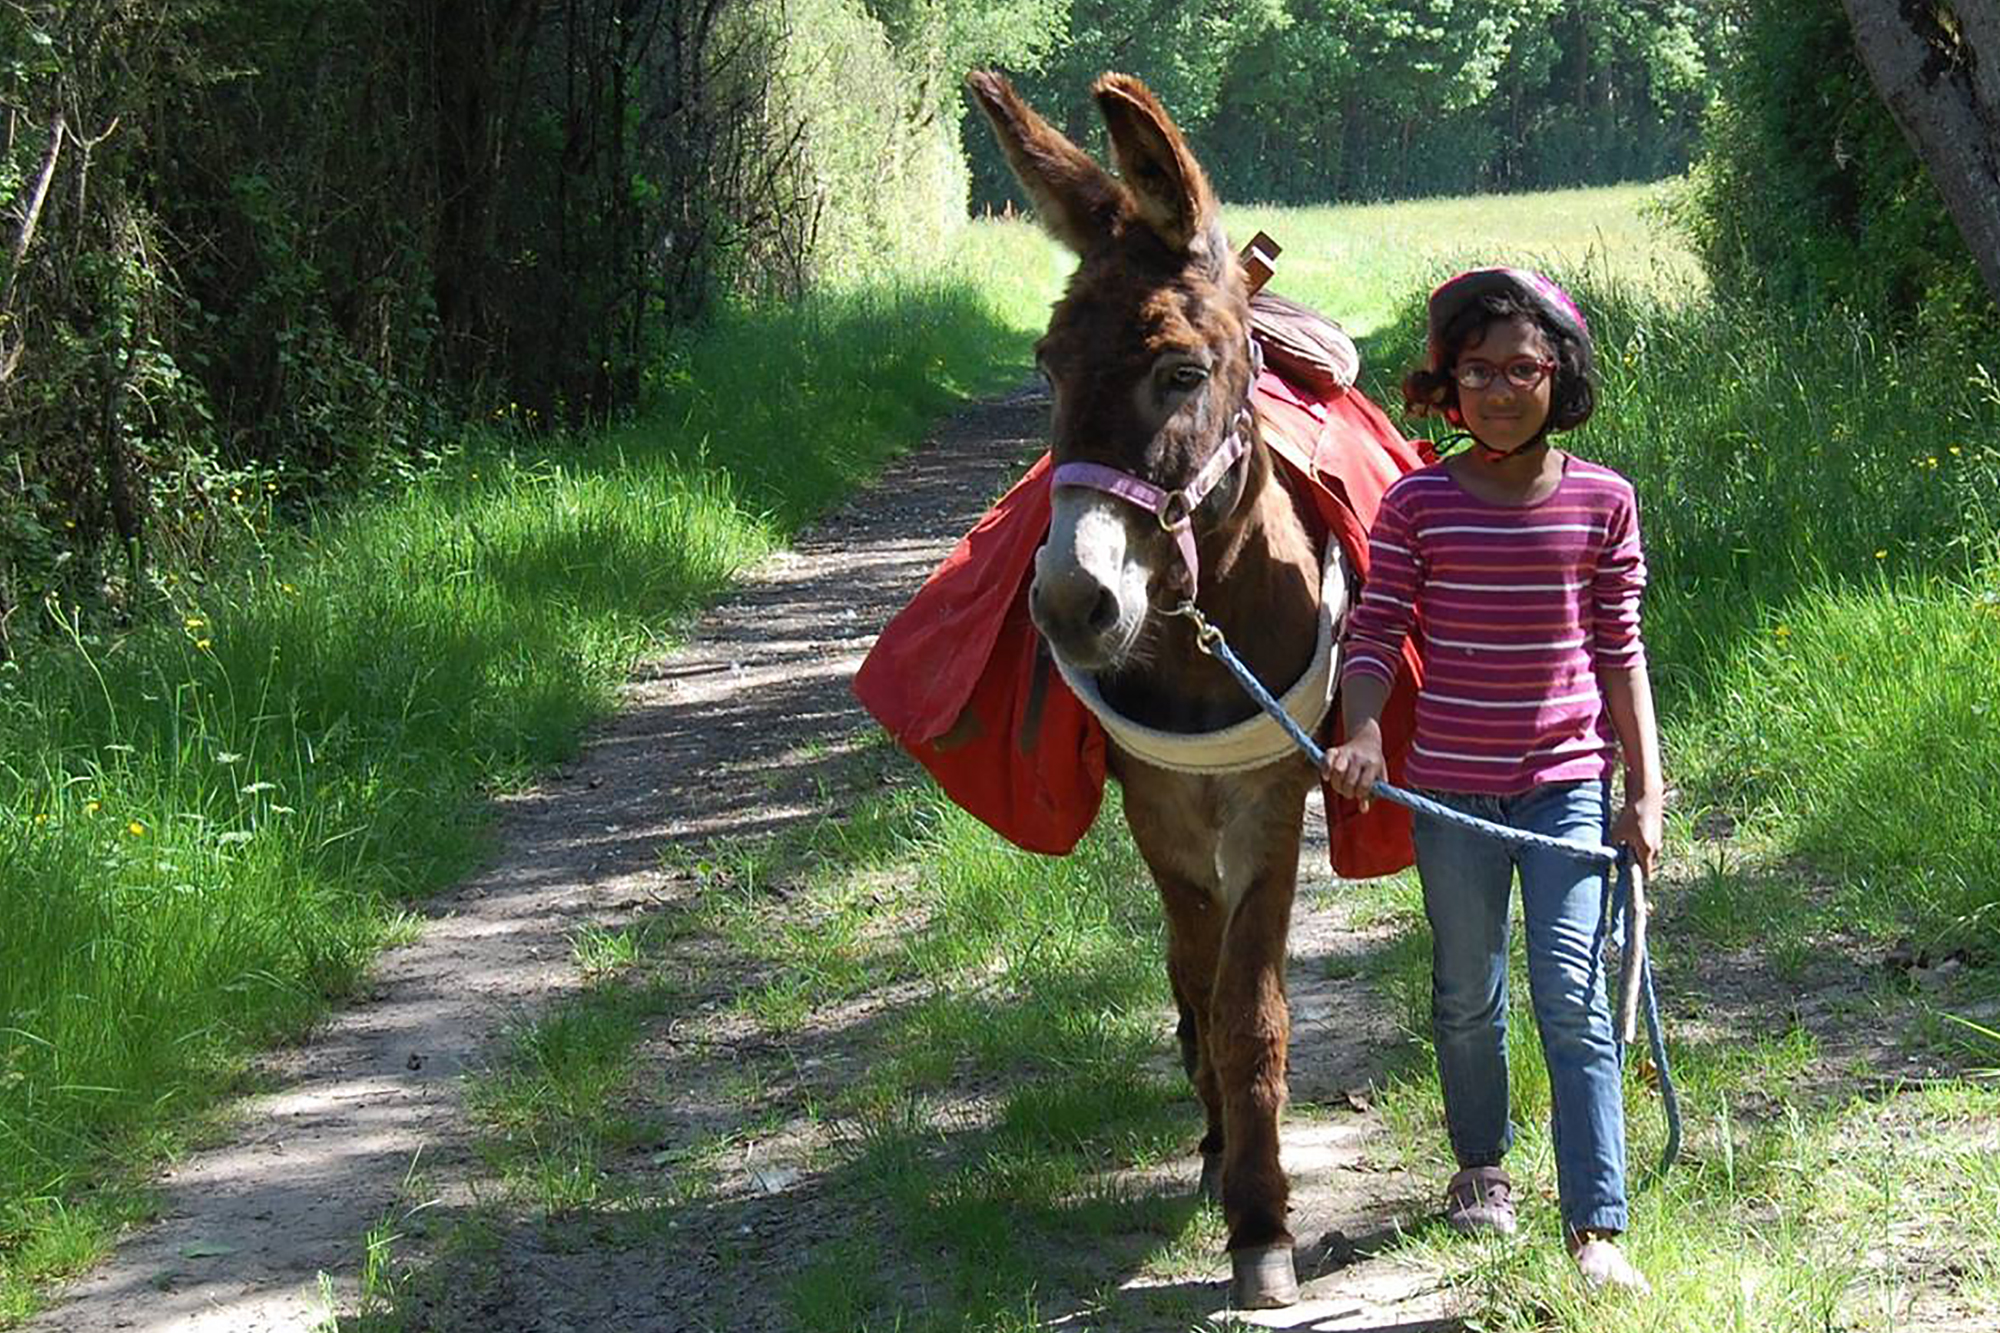 The short hikes with donkeys